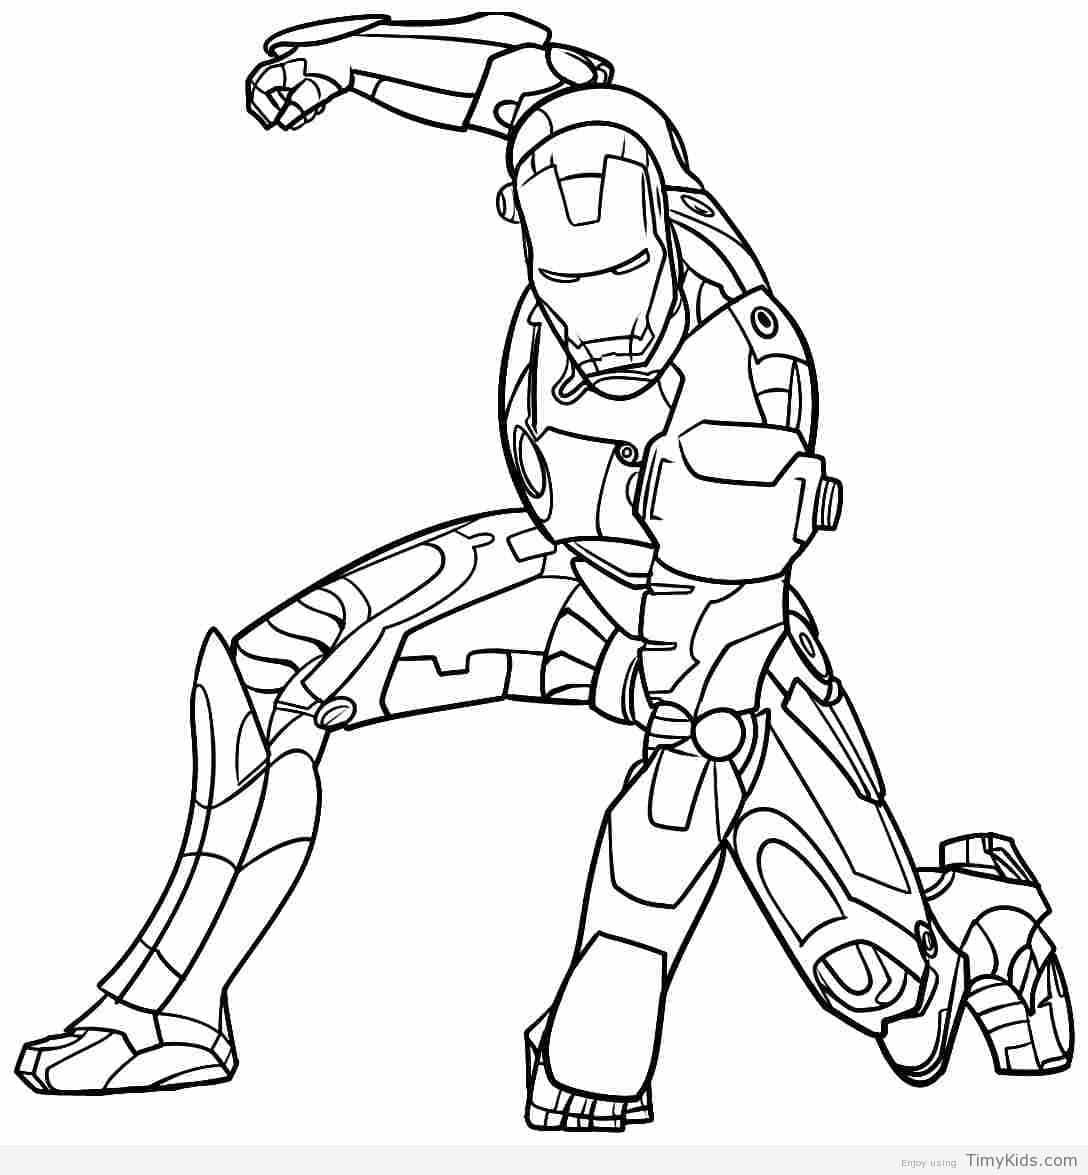 Timykids Ironman Coloring Sheet Html Colorings